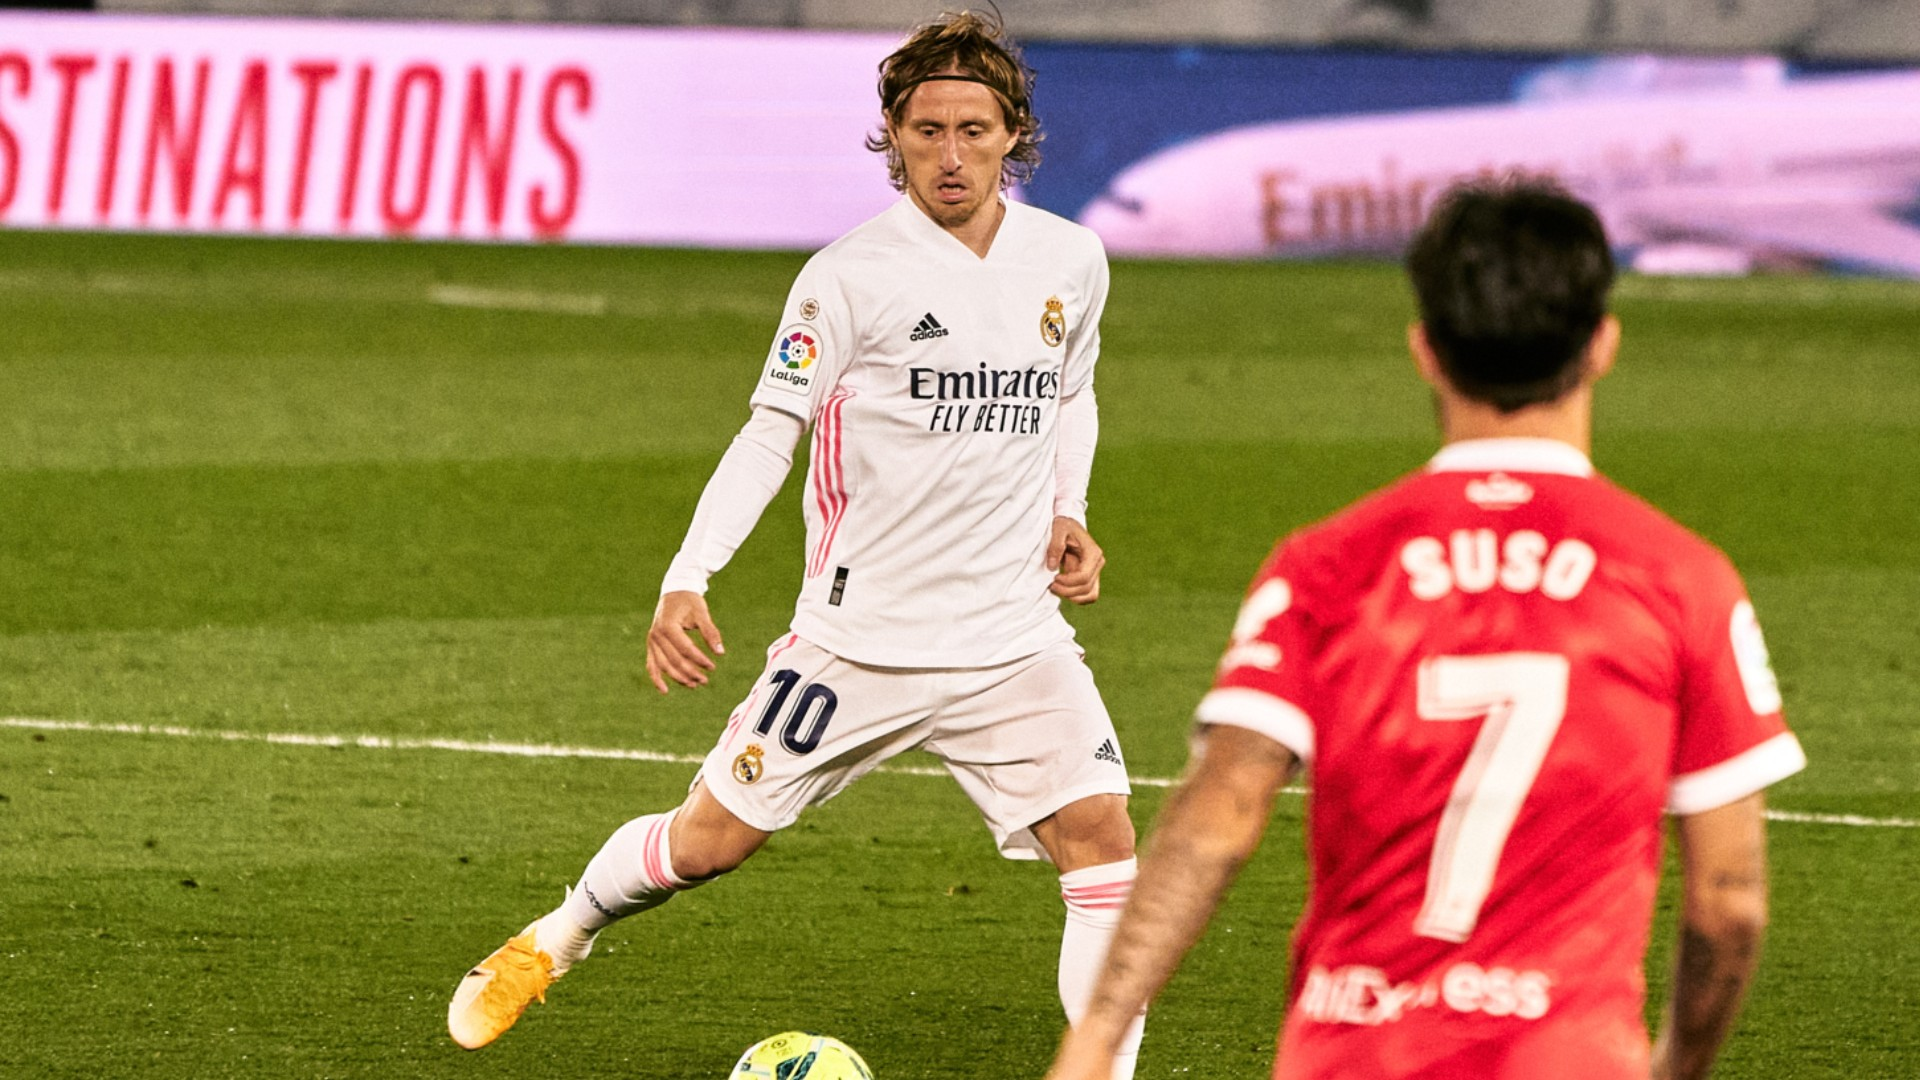 Modric won't stop believing in LaLiga title bid after Madrid's last-gasp draw